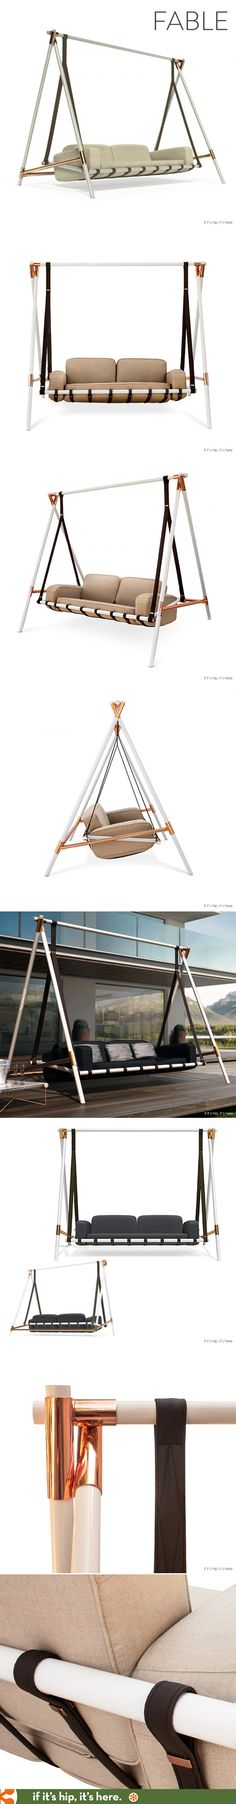 Finally, a nicely designed porch swing! The Fable swing is a suspended swinging sofa   available in various colors. Details at http://www.ifitshipitshere.com/the-fable-swing/